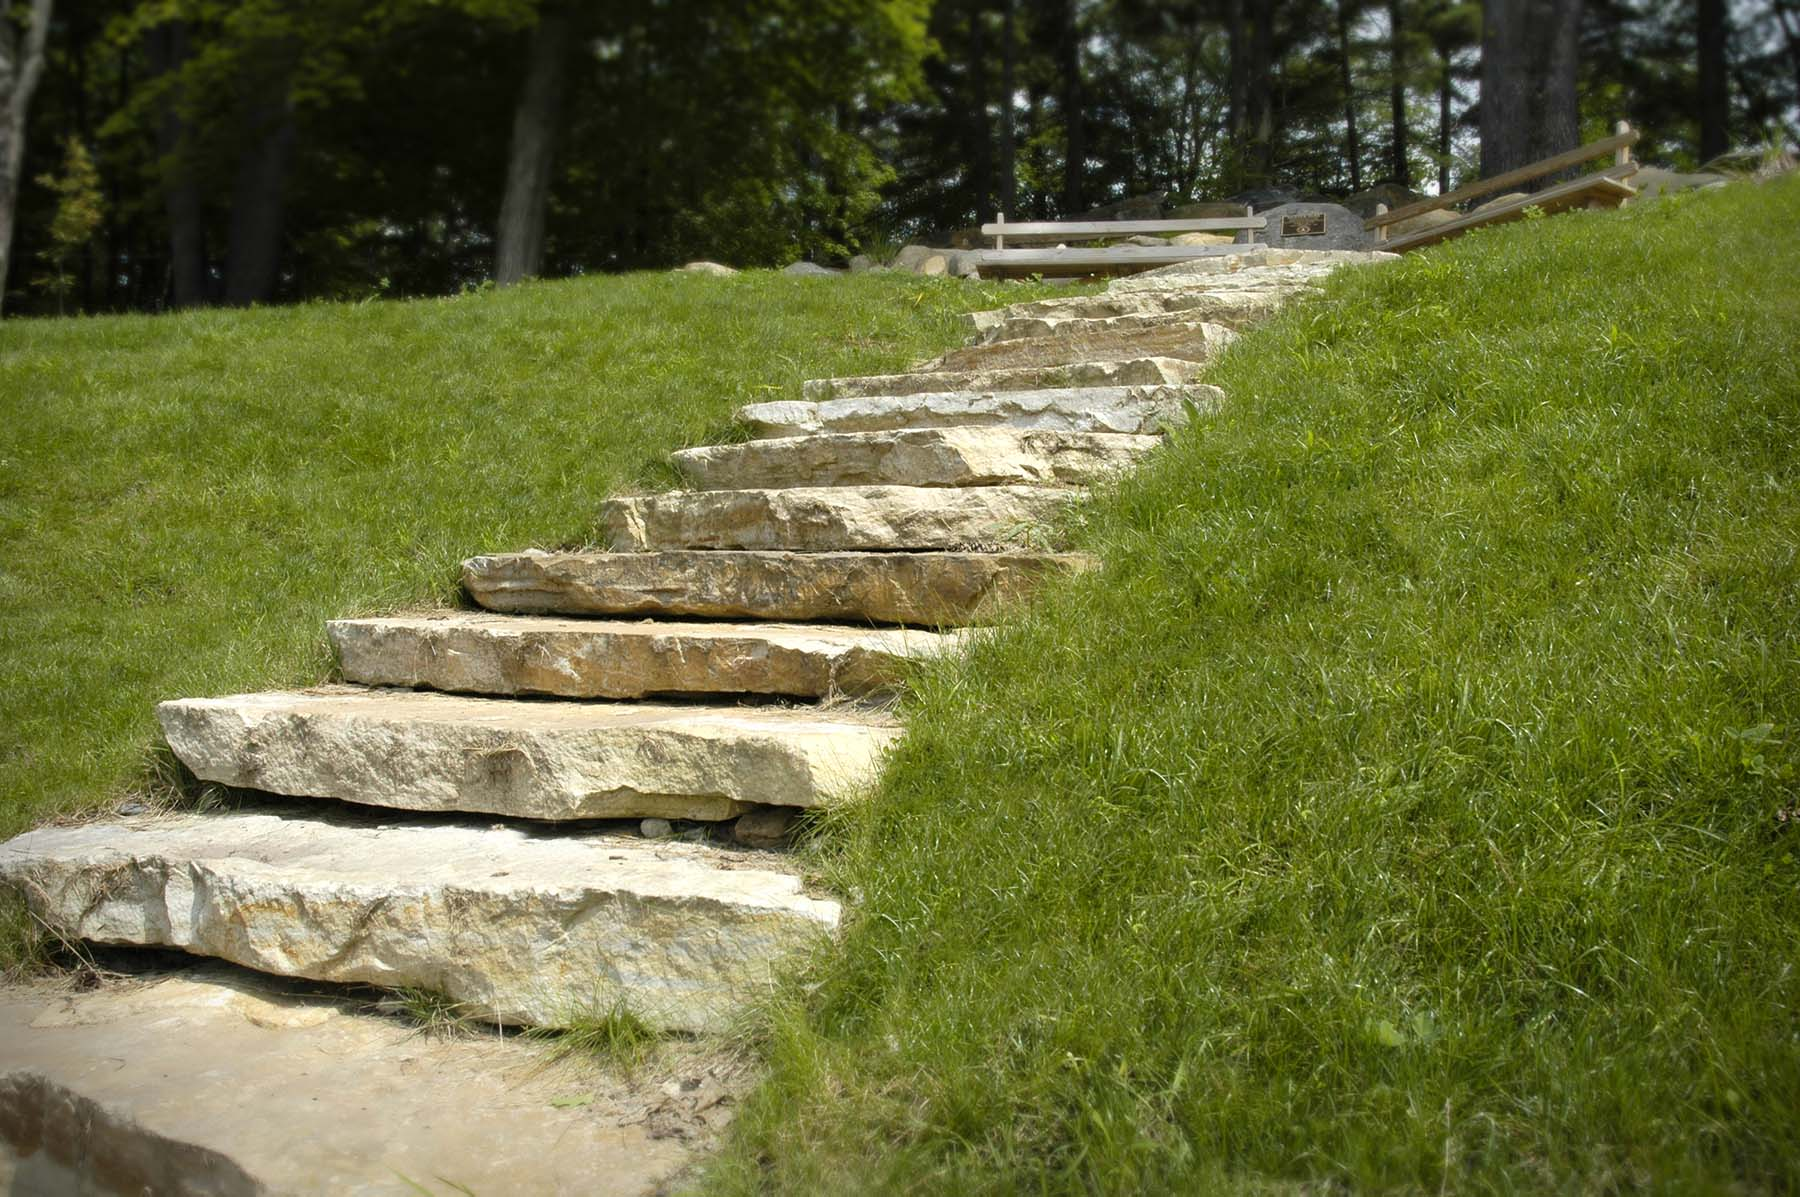 South Bay Quartzite natural stone slab steps in park